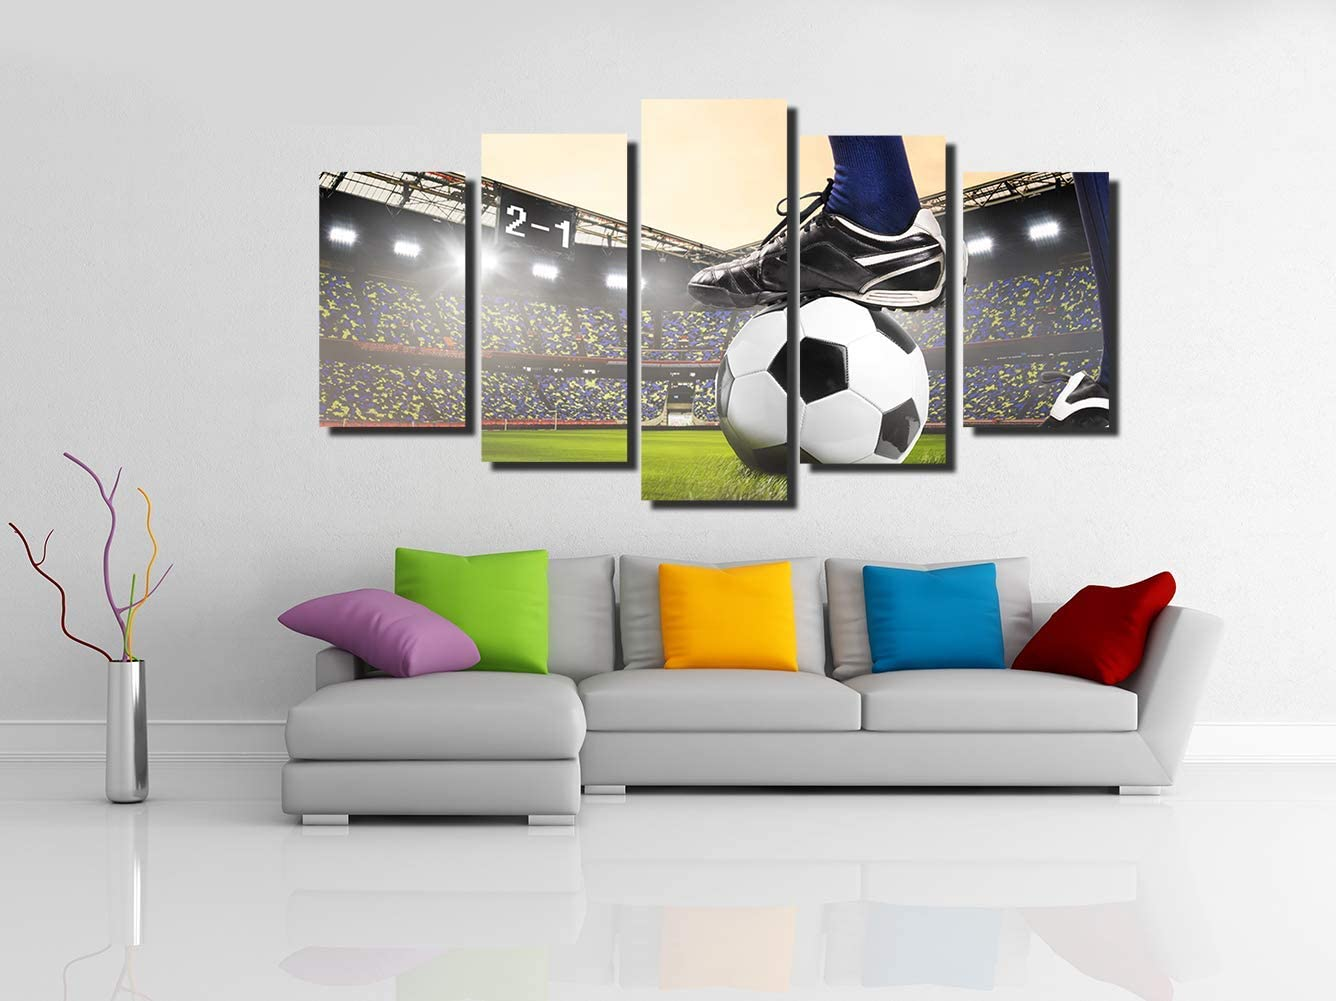 FONWAPAI Football Wall Art Canvas Painting,Sports Themed Living Room Decor,Gift for Kids,Easy to Hang Football-Grassland,Size S,Framed